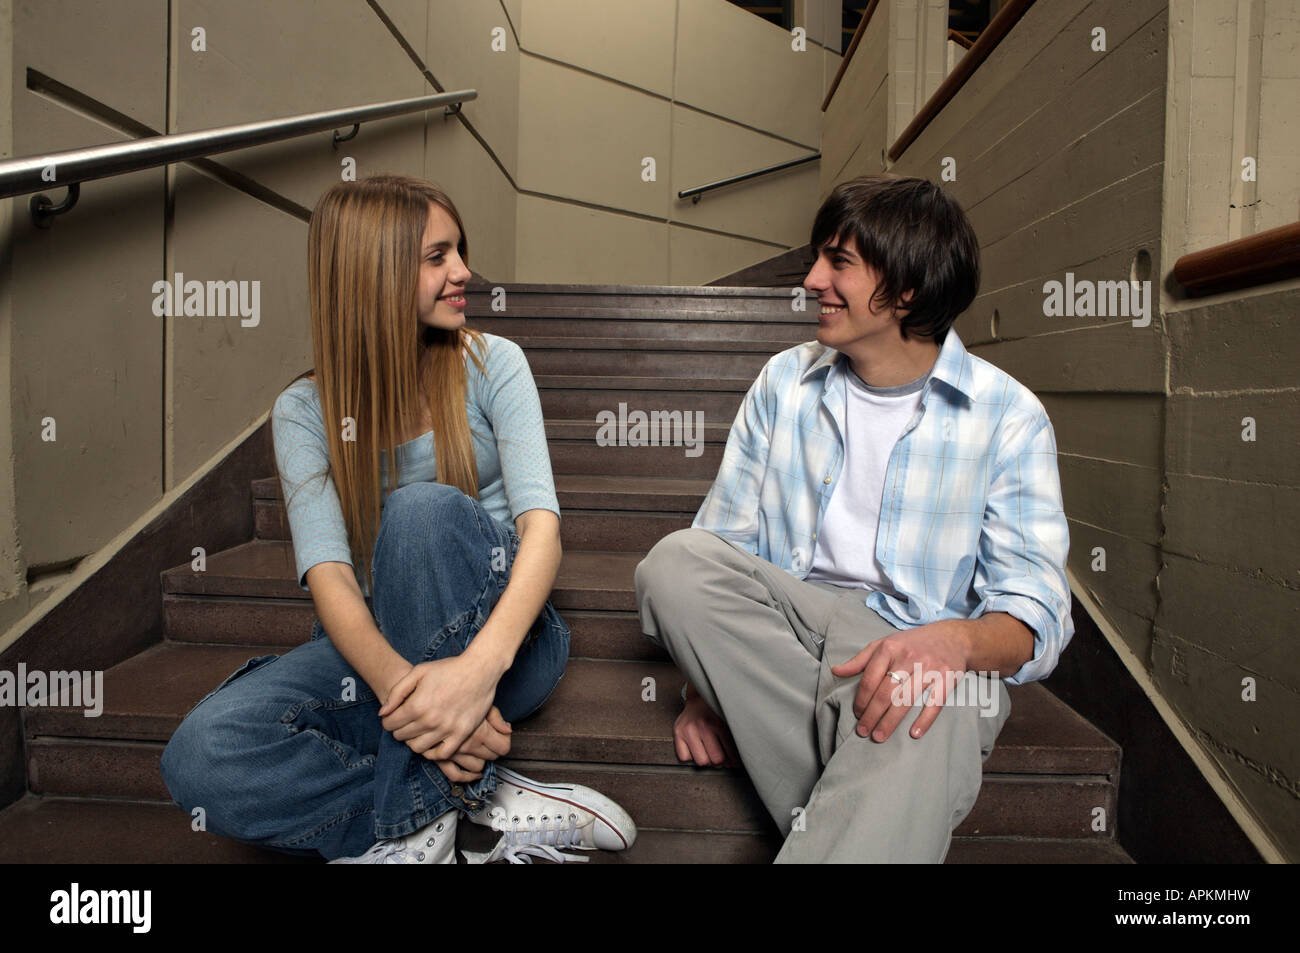 Students sitting on staircase - Stock Image